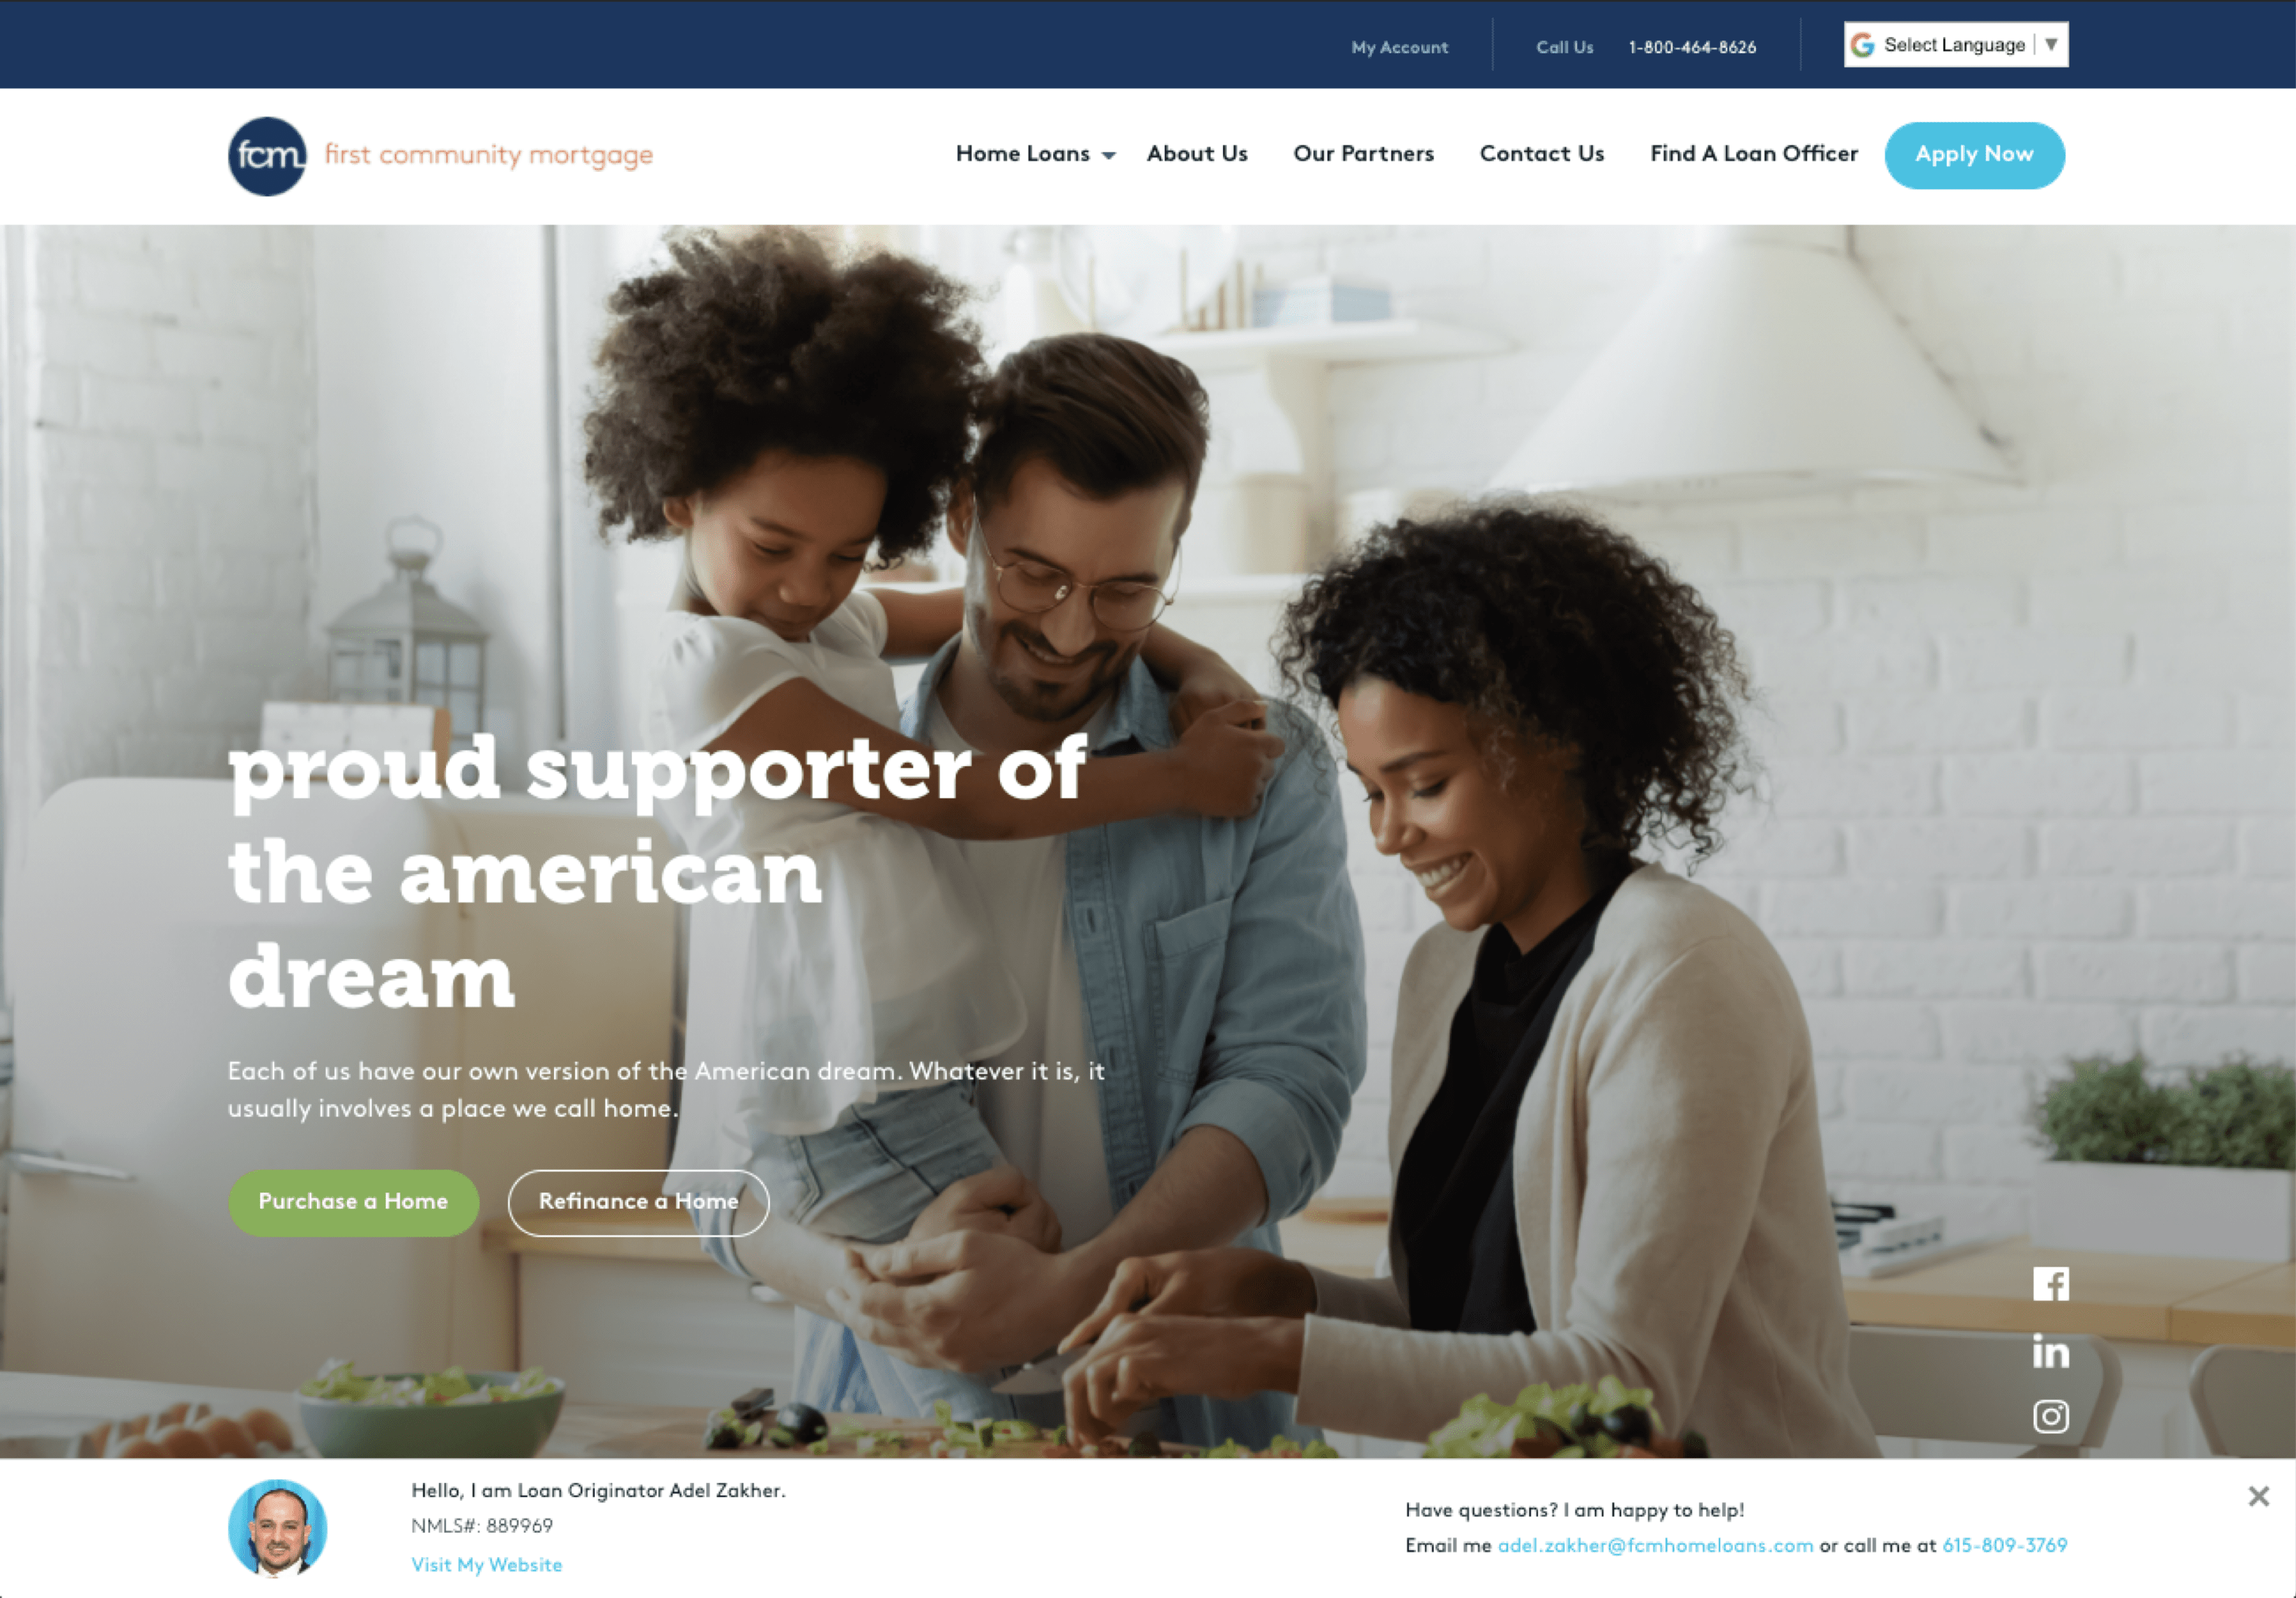 Mortgage Lender Gets a User Experience Makeover